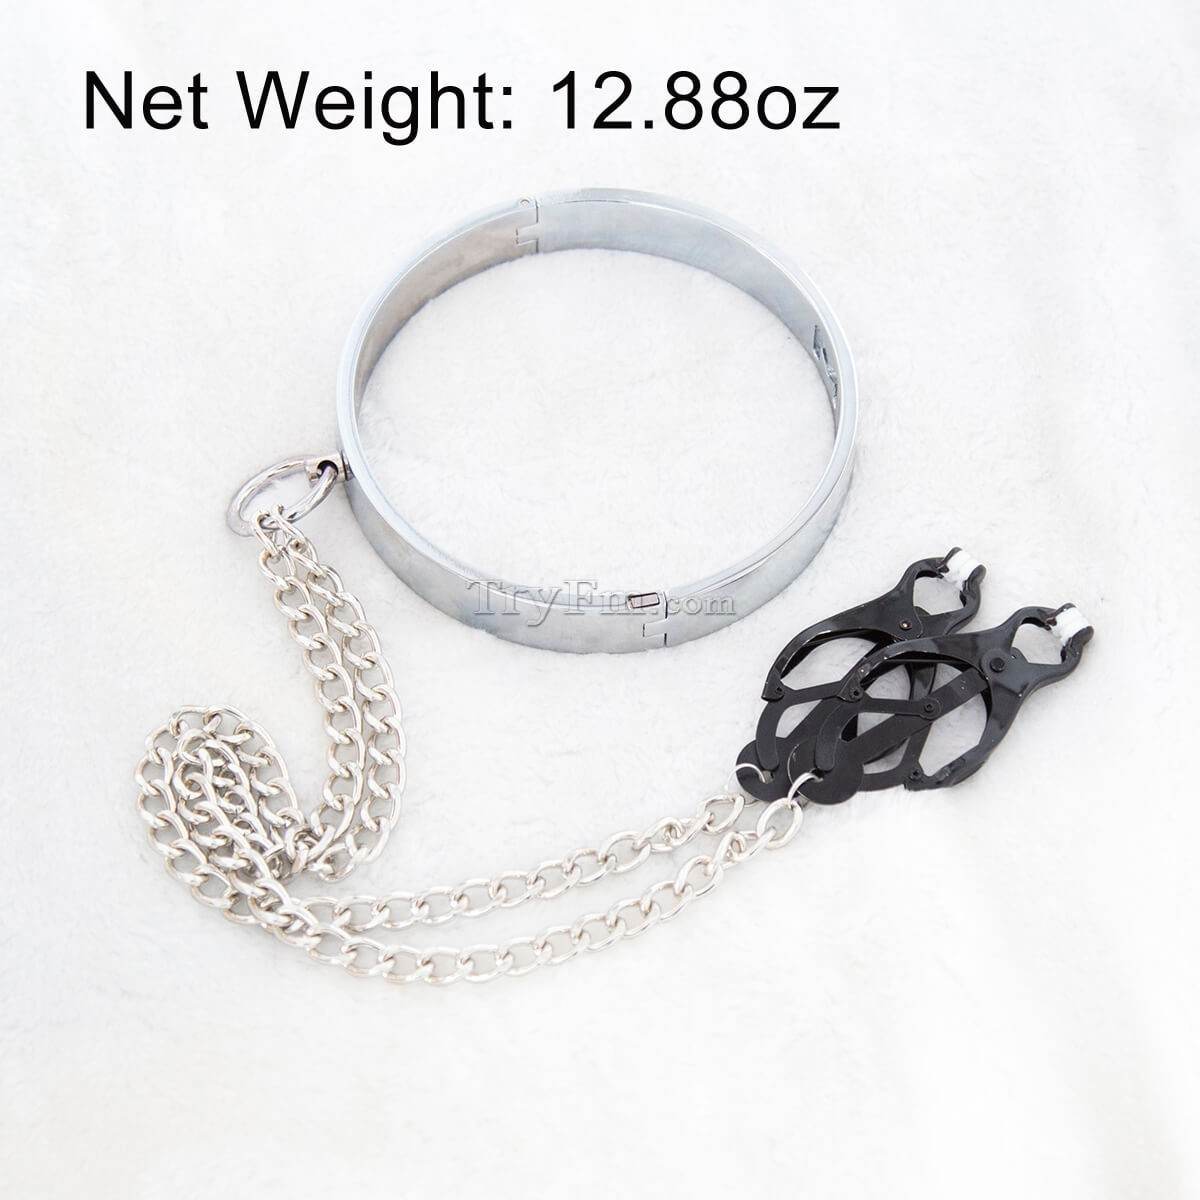 9-metal-neck-collar-with-nipple-clamps-15.jpg